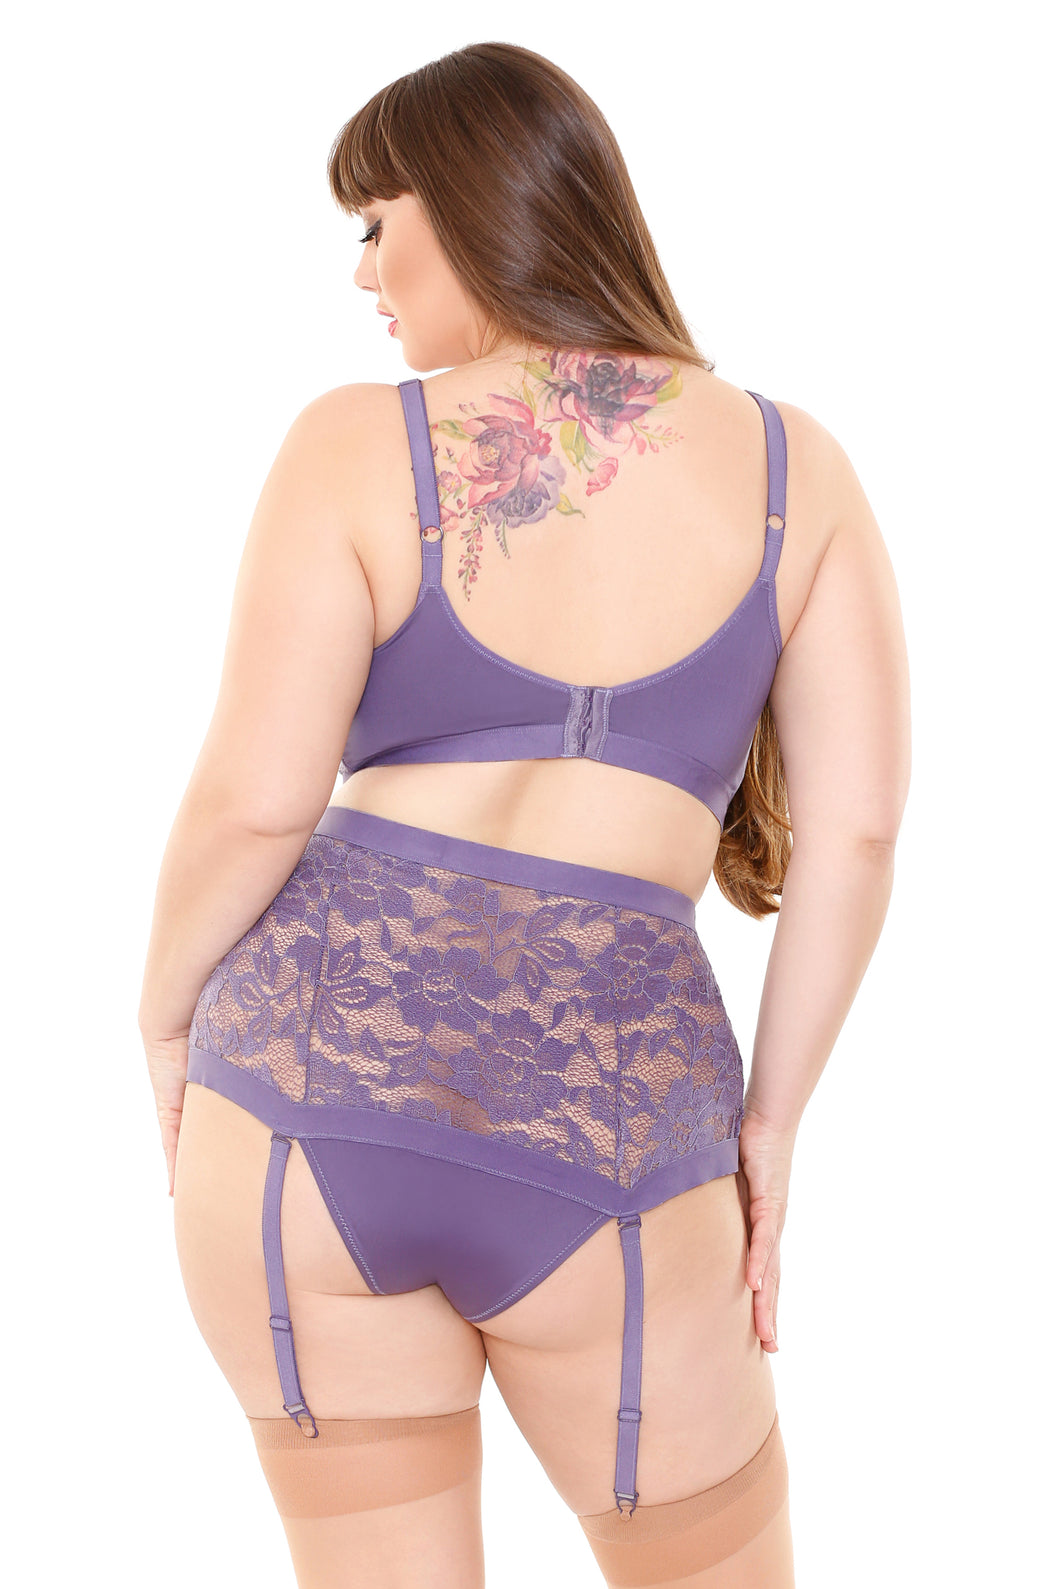 Periwinkle Monica Bra & High Waisted Gartered Panty